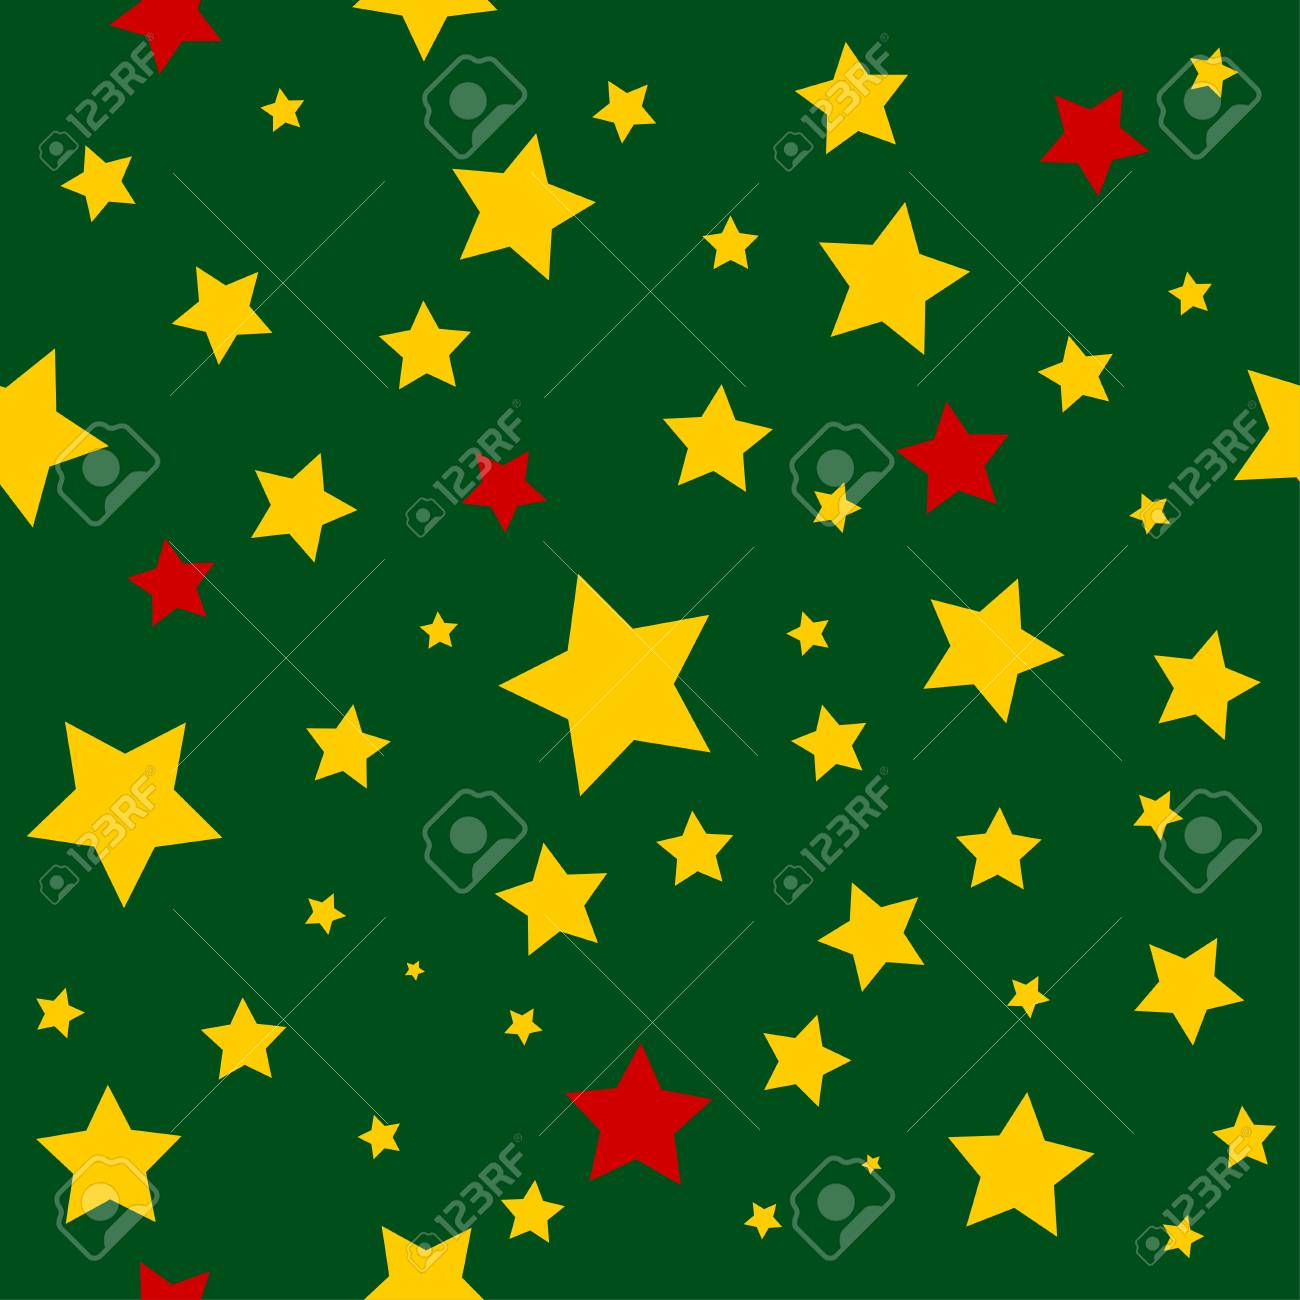 vector yellow red stars green christmas background vector illustration